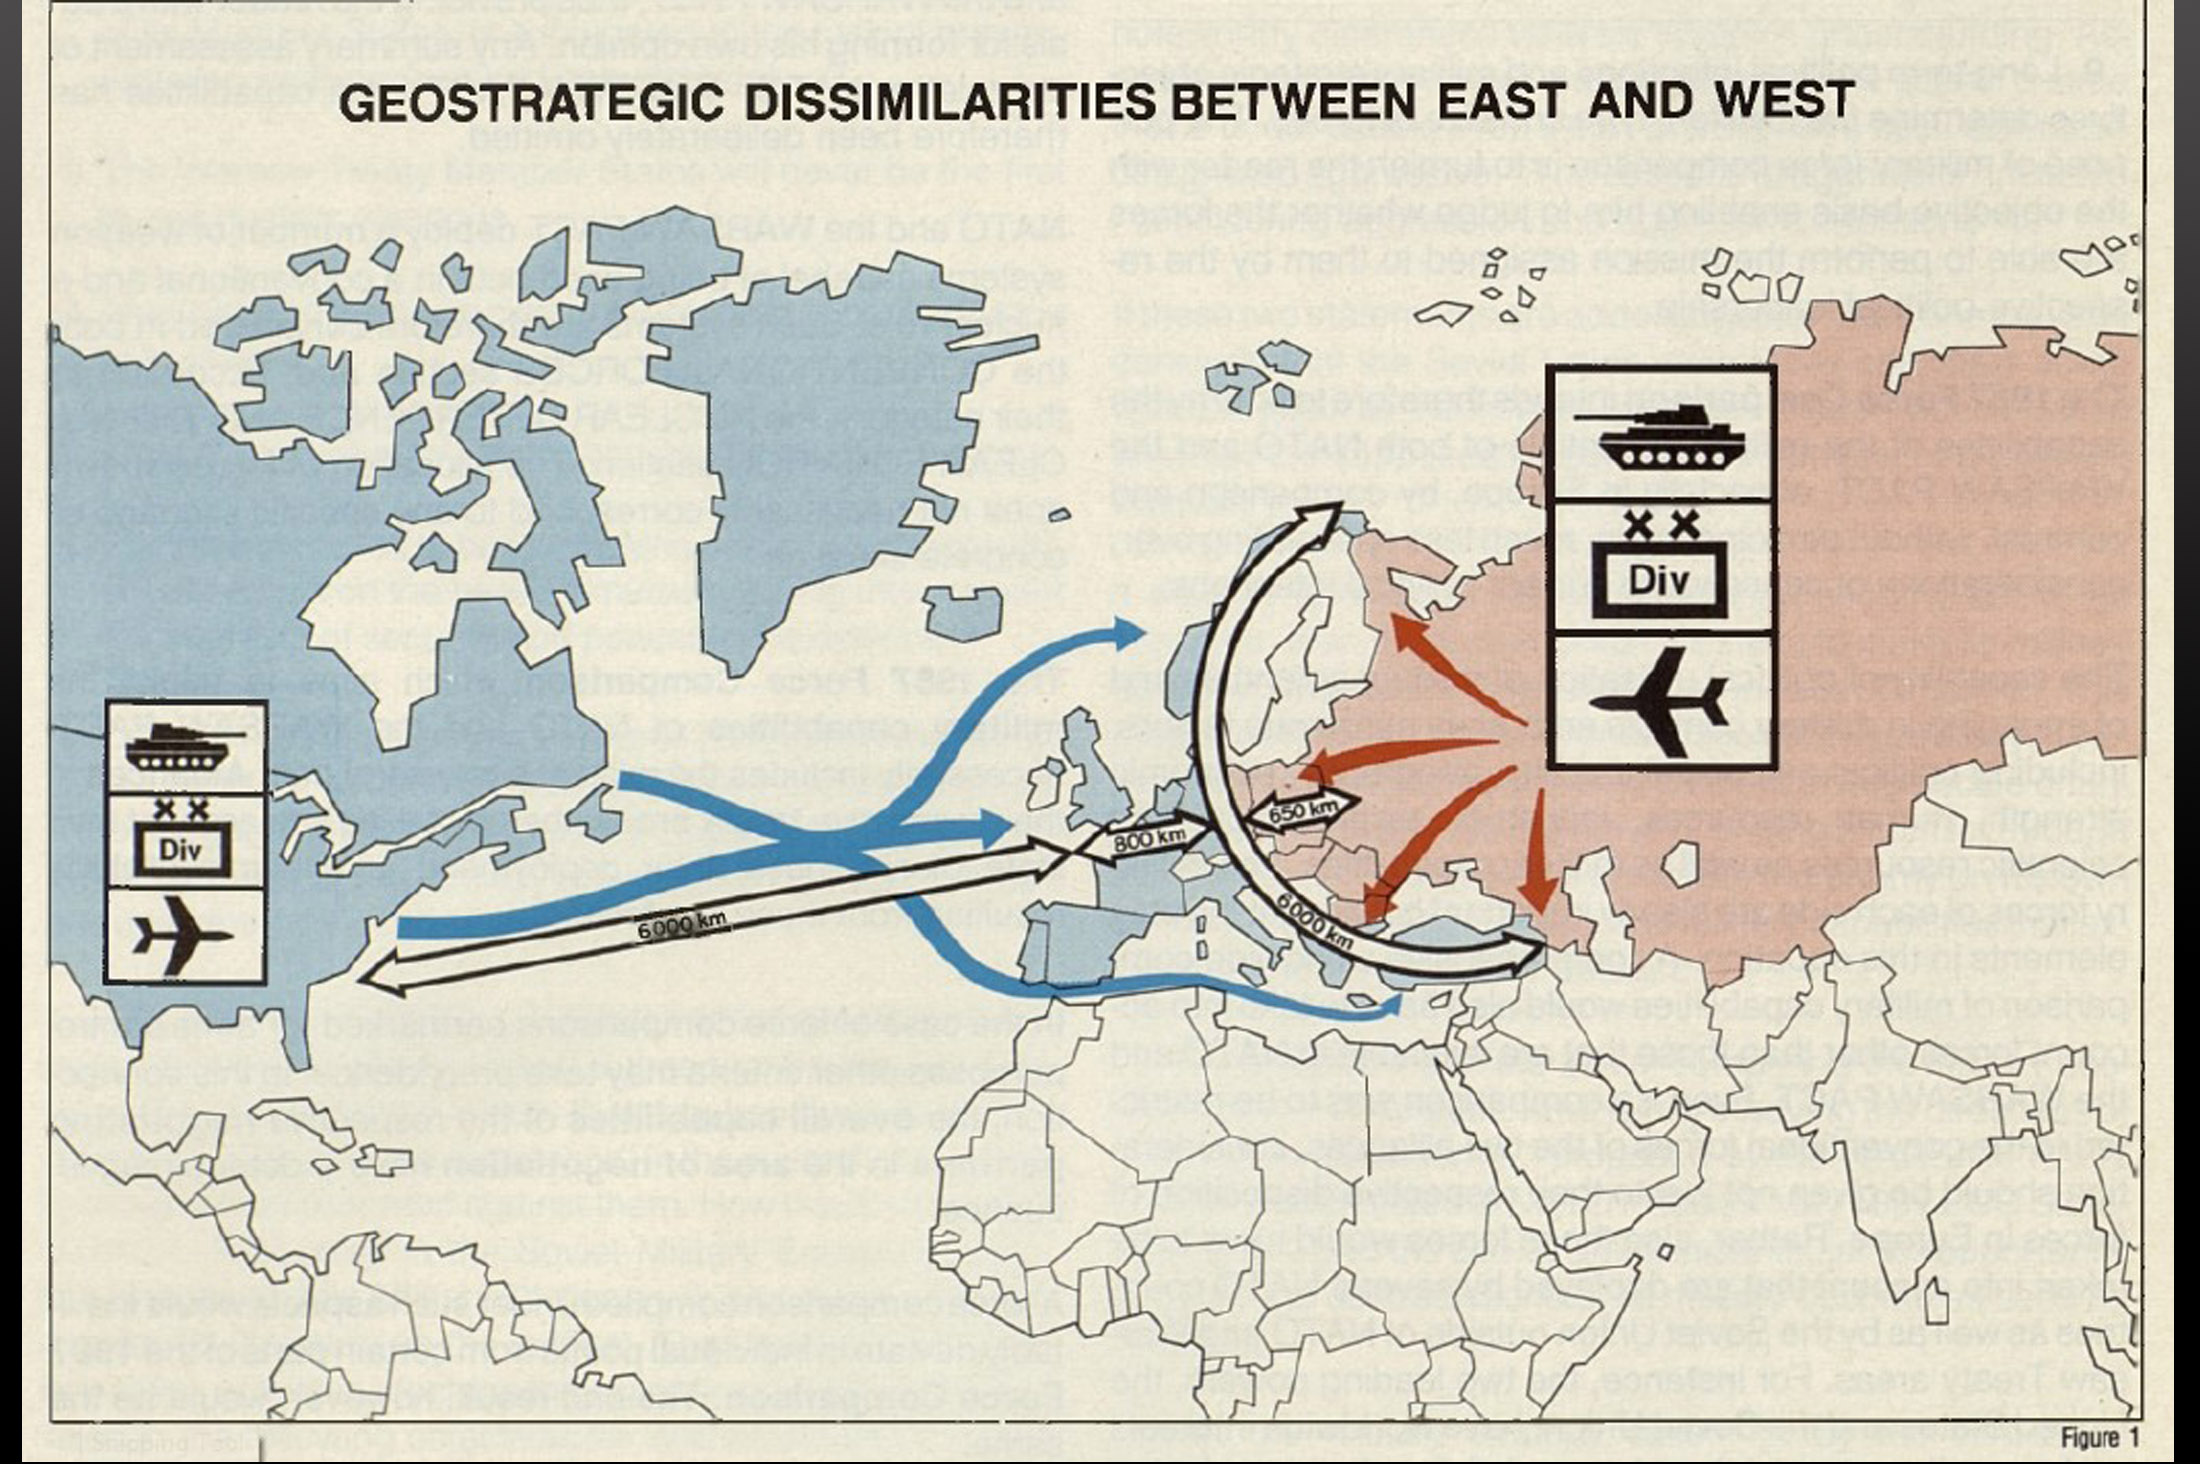 Geostrategic dissimilarities between East and West